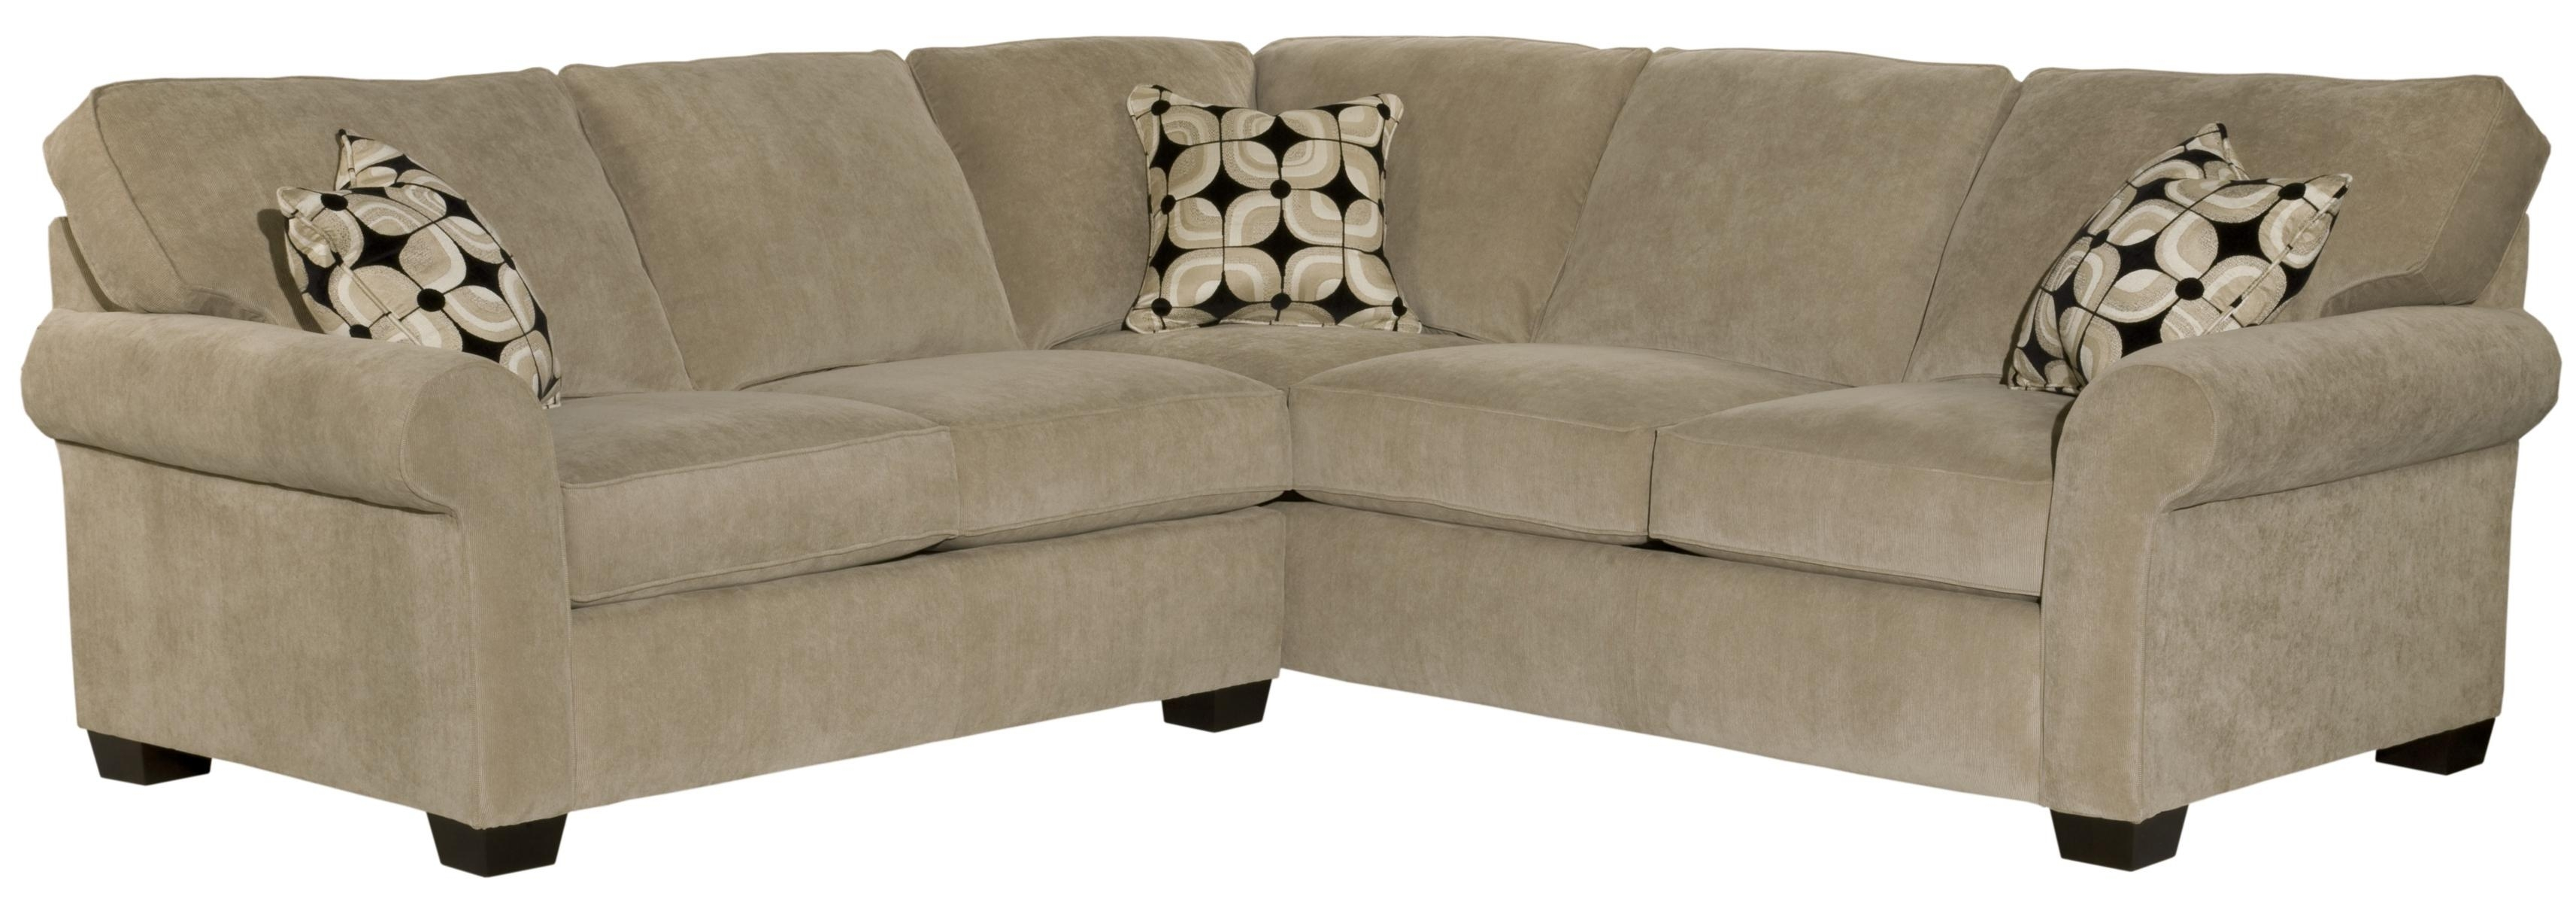 Broyhill Furniture Ethan Two Piece Sectional With Corner Sofa – Ahfa With Sectional Sofas At Broyhill (View 3 of 15)